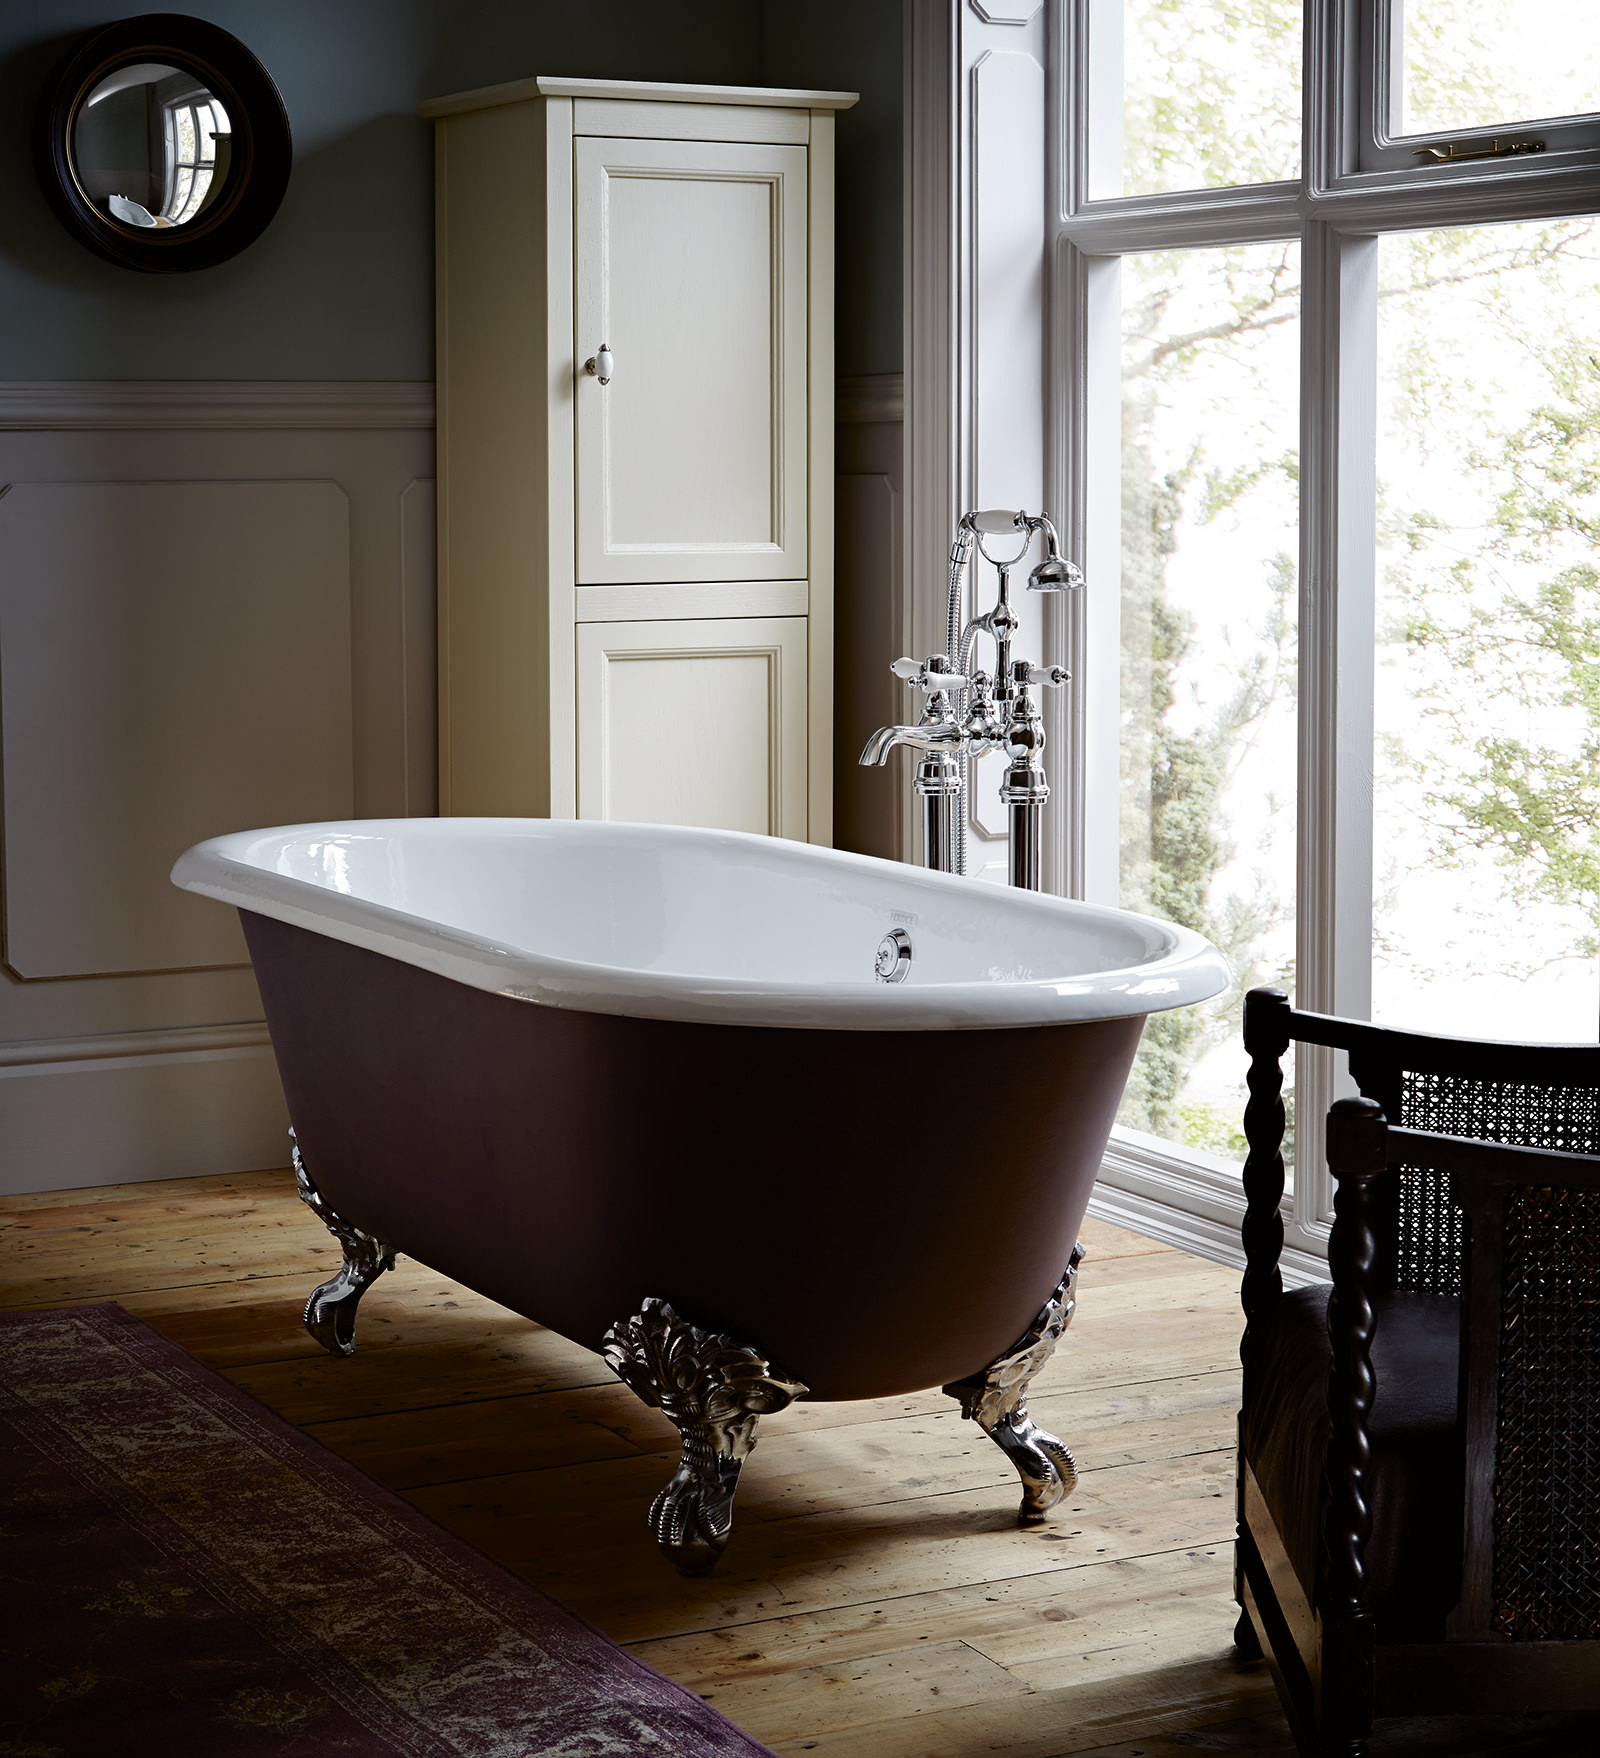 image of heritage baby buckingham cast iron roll top bath with feet